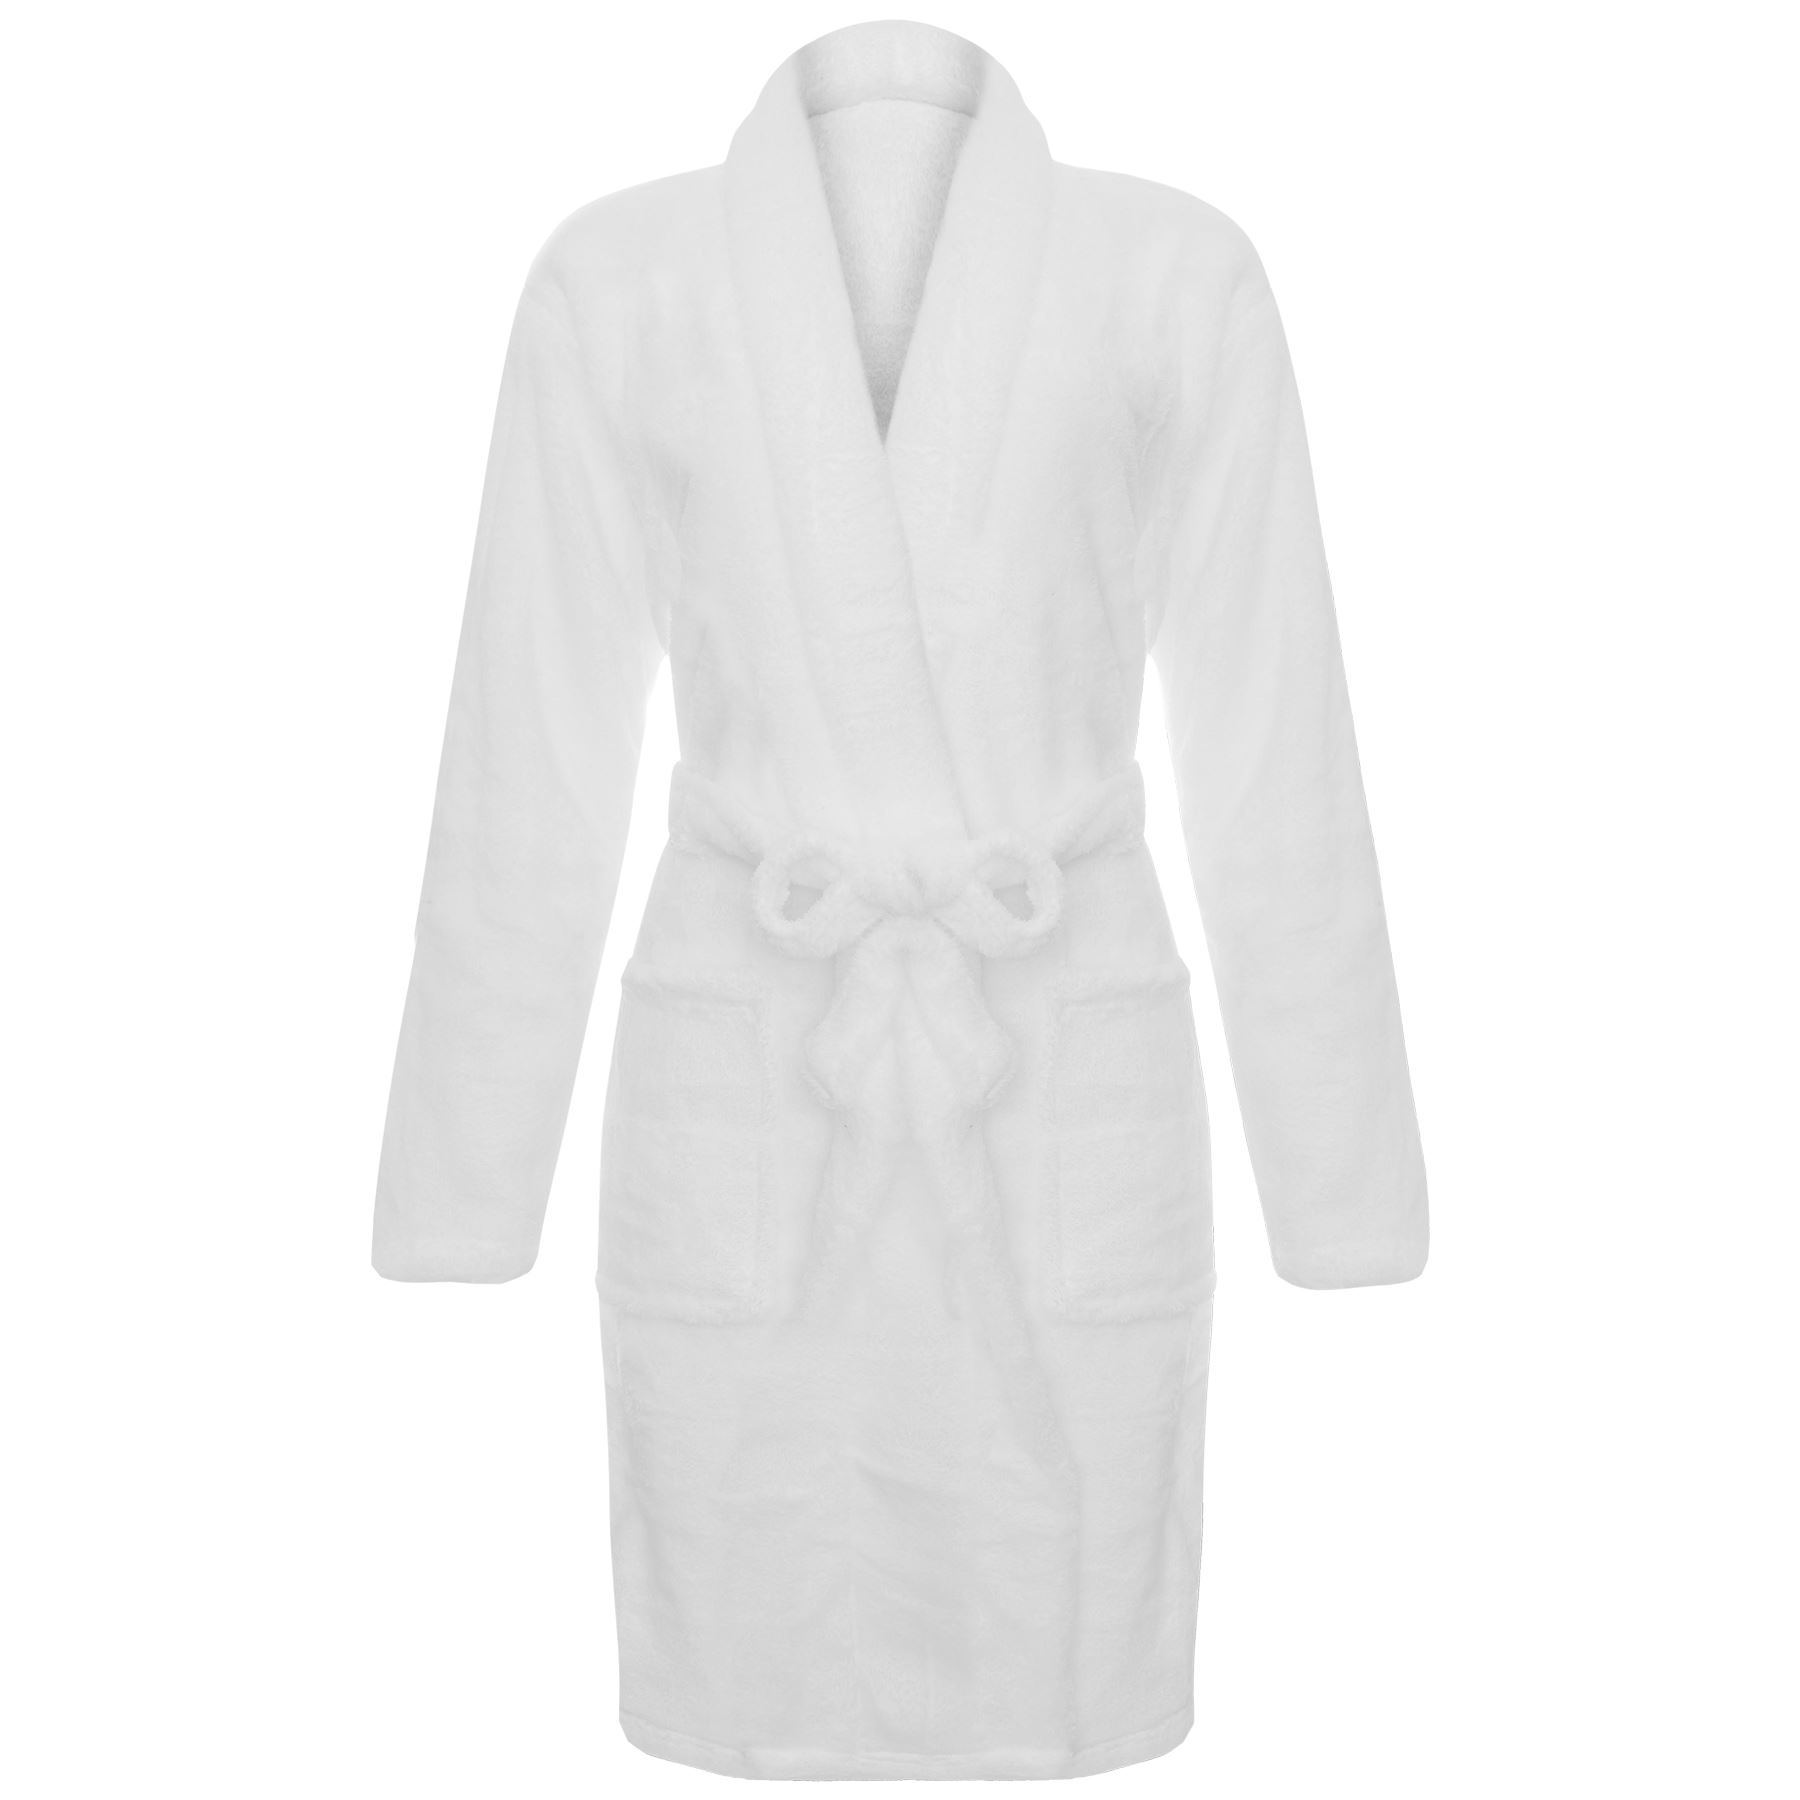 Ladies Luxury Soft Fleece Plush Bathrobe Dressing Gown Shower ...